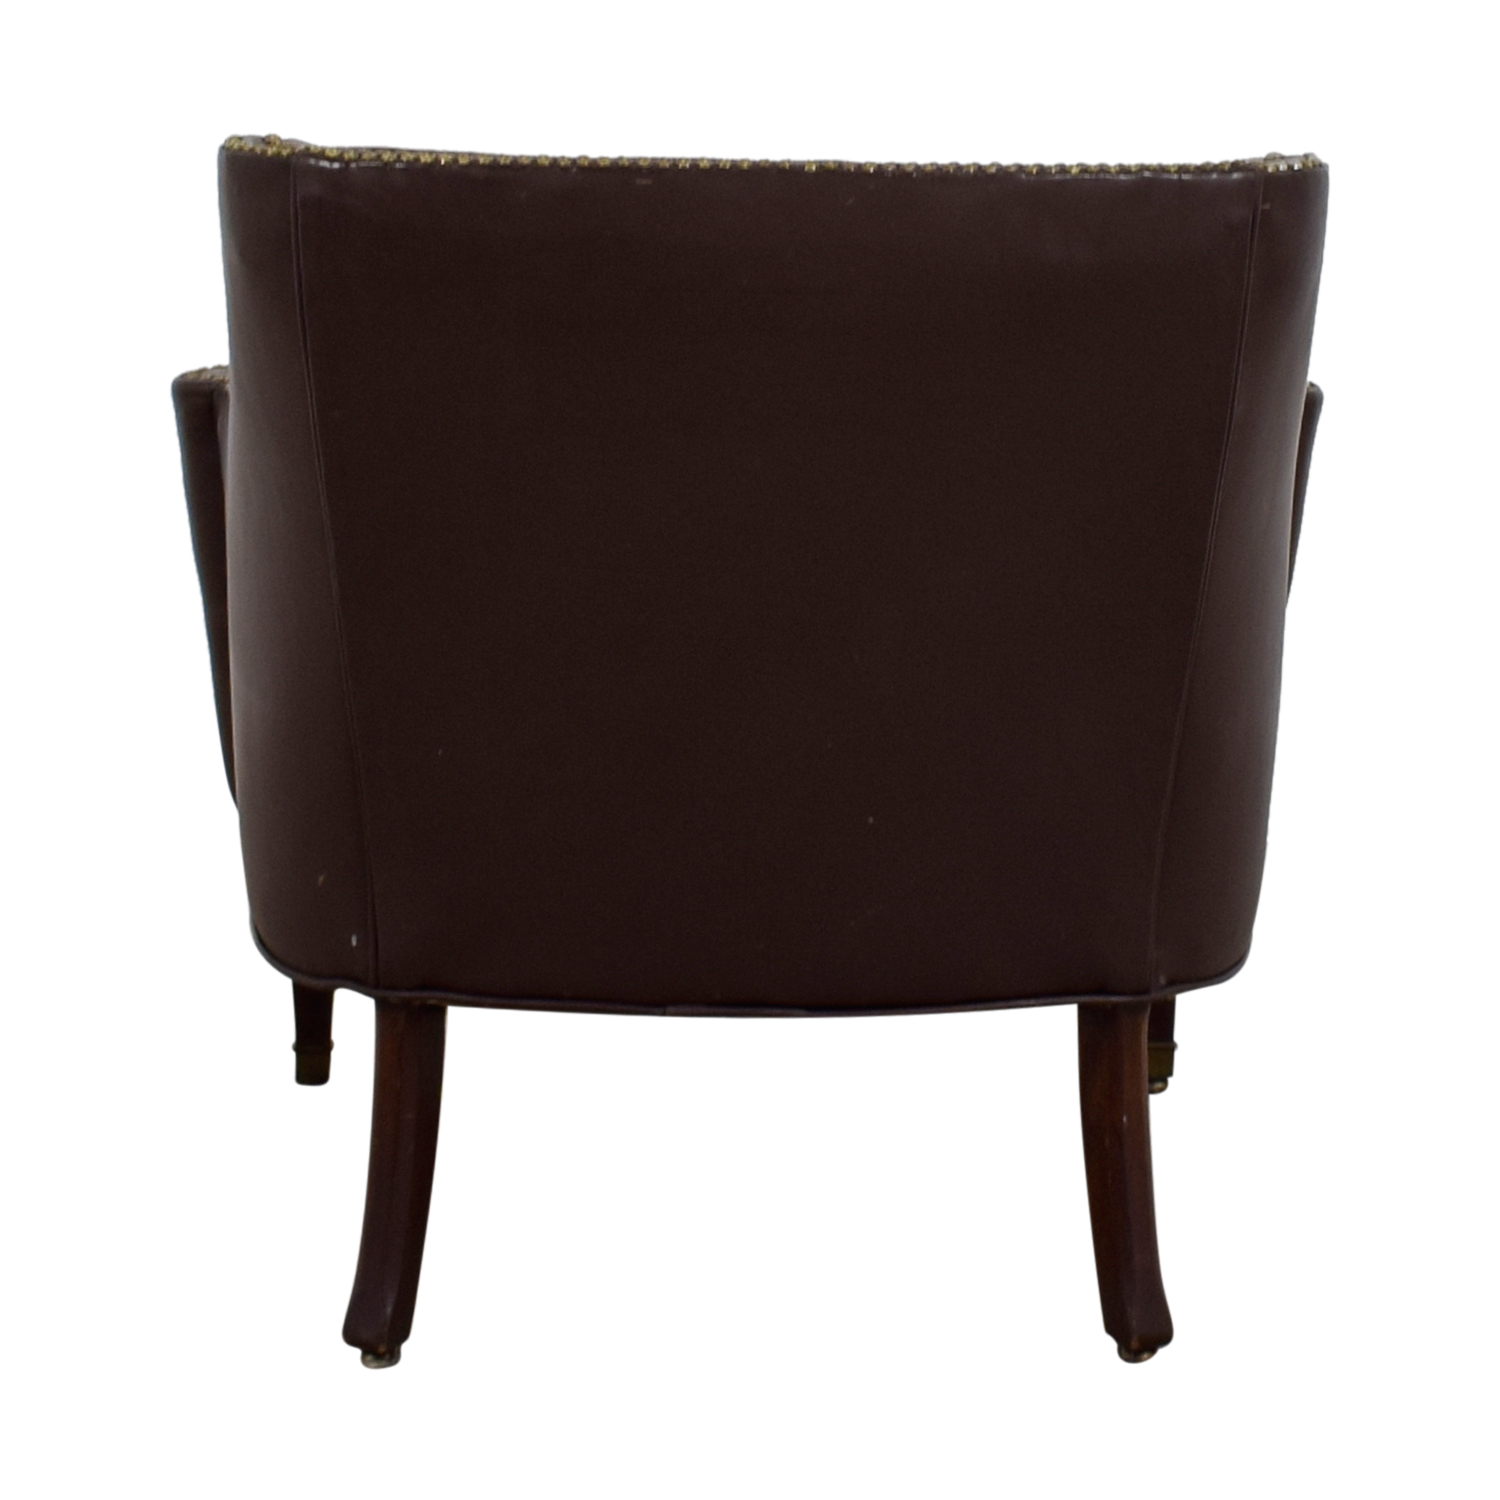 Pier 1 Imports Pier 1 Imports Brown Leather Side Chair